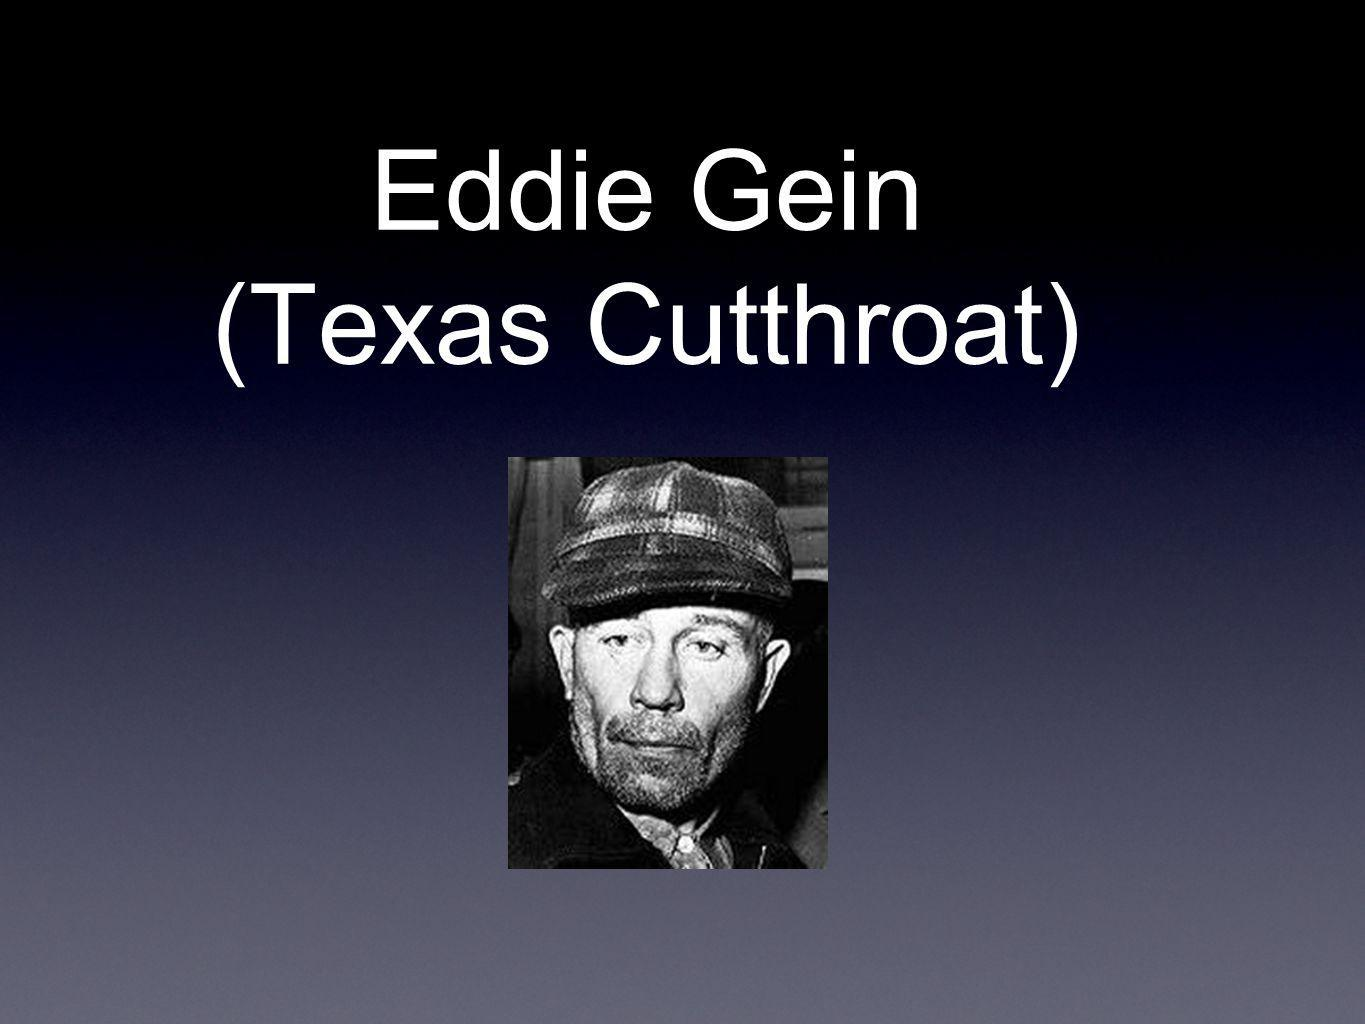 Personality: Eddie Gein was the complete opposite of his brother henry, who enjoyed his life and always have fun with his friends.